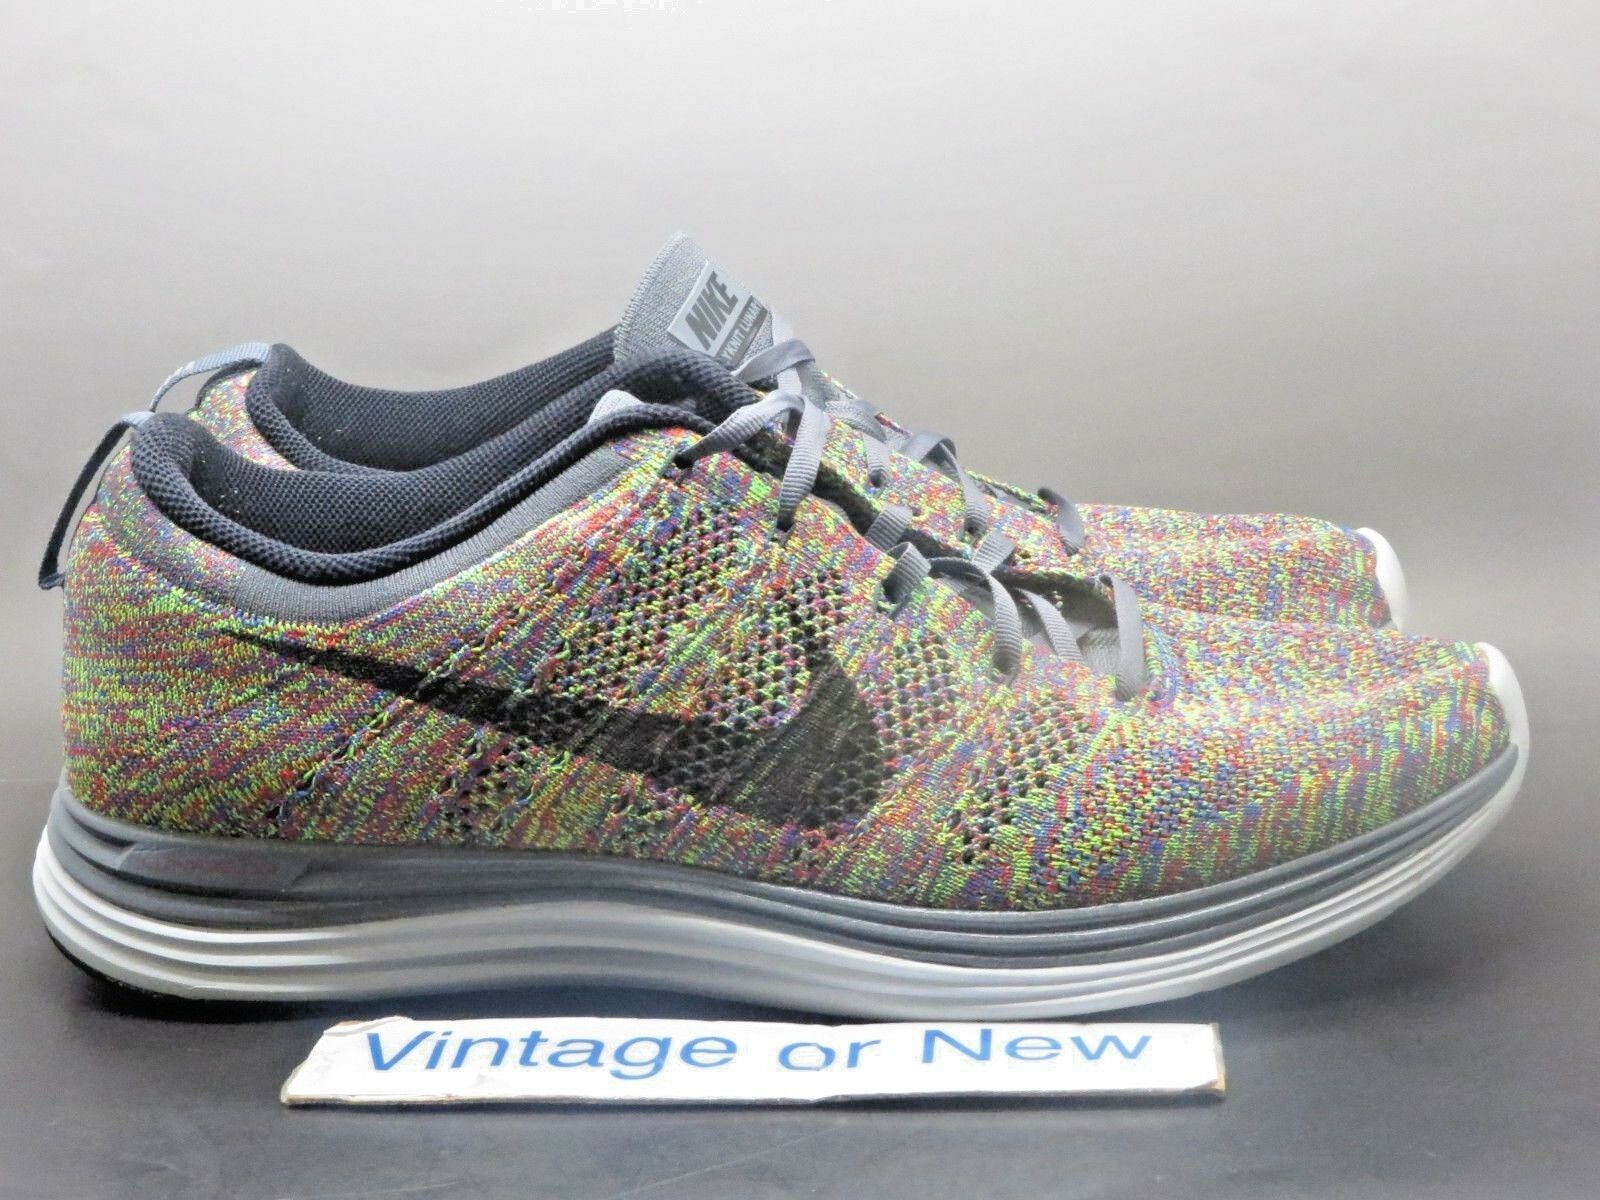 Men's Nike Flyknit Lunar+ 1 Multicolor sz Racer Running Shoes 554887-004 sz Multicolor 12 f81102